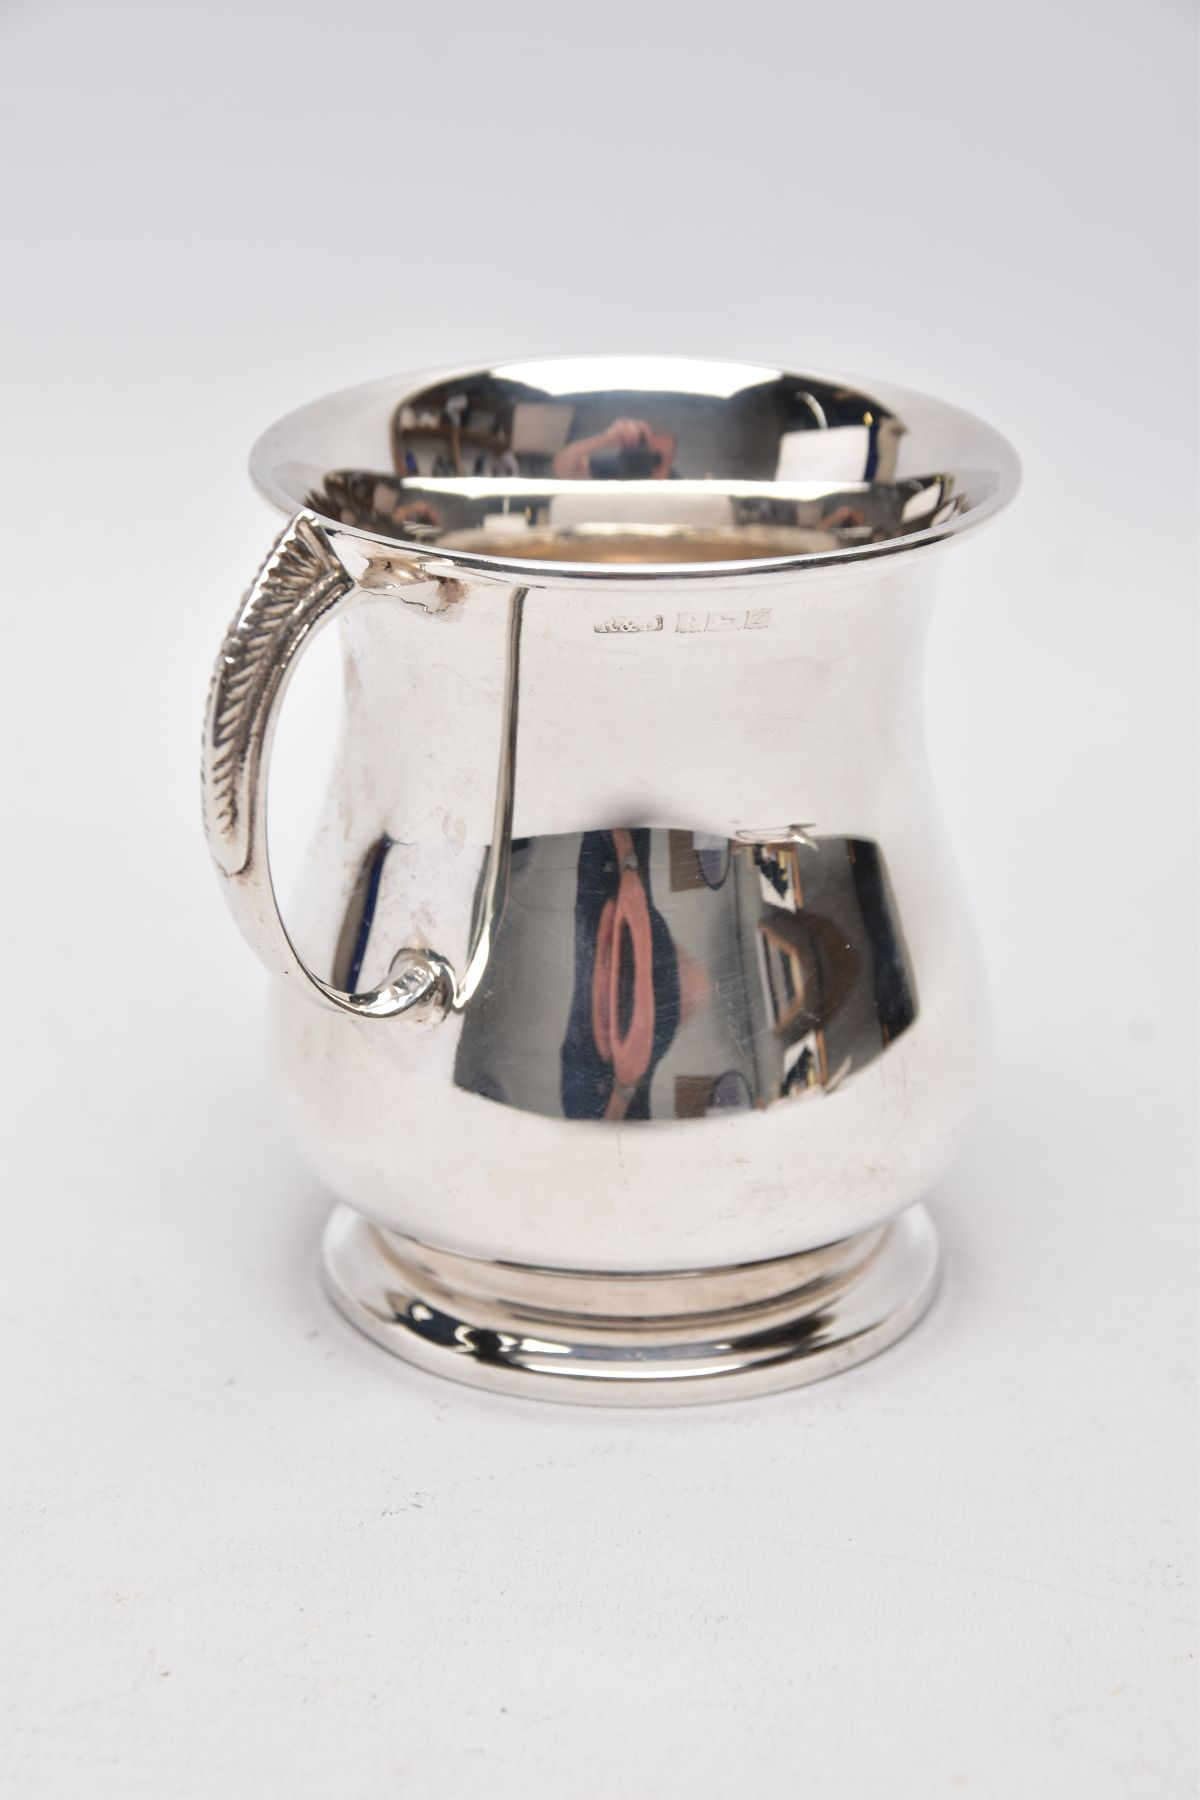 A SILVER TANKARD, bell shaped body with a feather detailed handle, hallmarked 'Roberts & Dore'